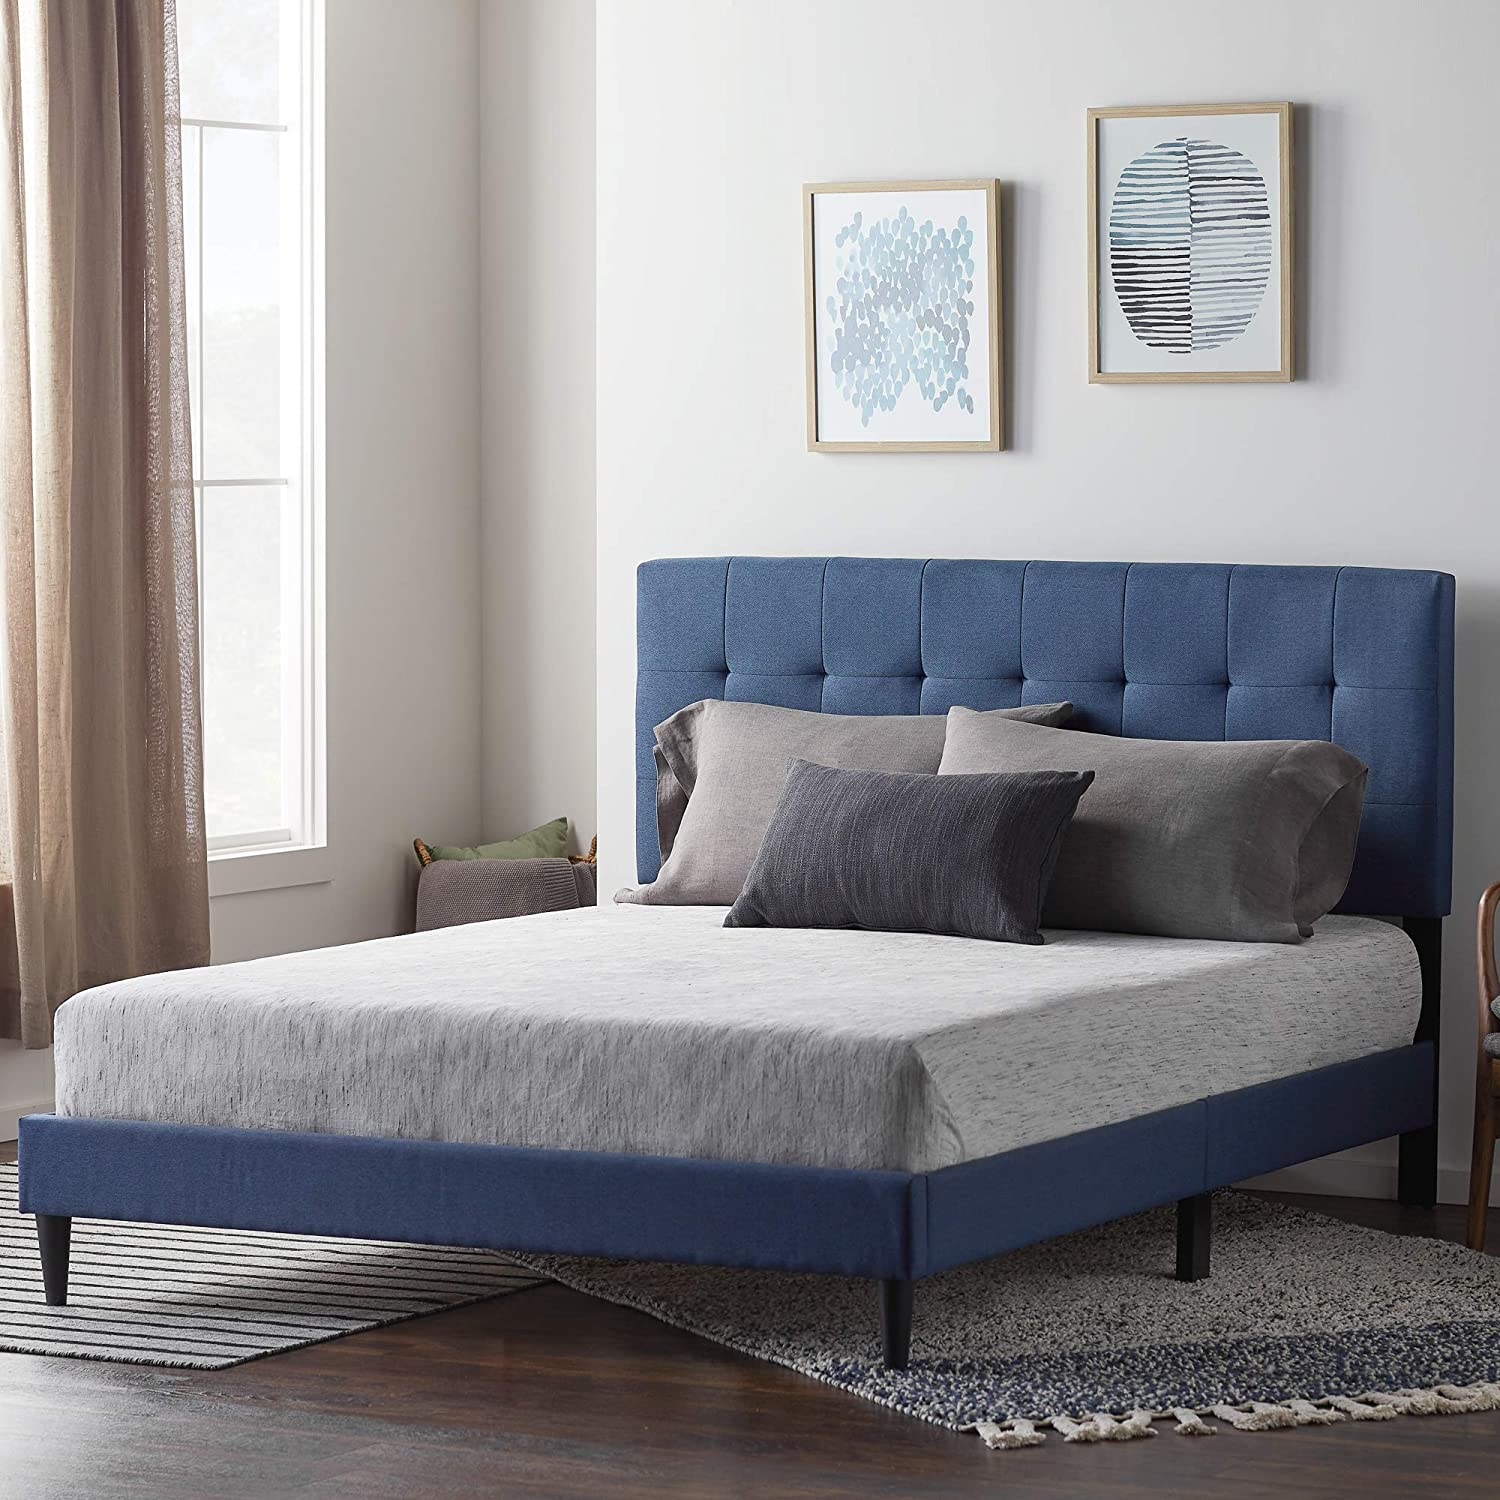 No Box Spring Required Platform Charcoal LUCID Upholstered Bed with/Square Tufted/Headboard/-Linen Inspired Fabric Twin XL Sturdy Wood Build